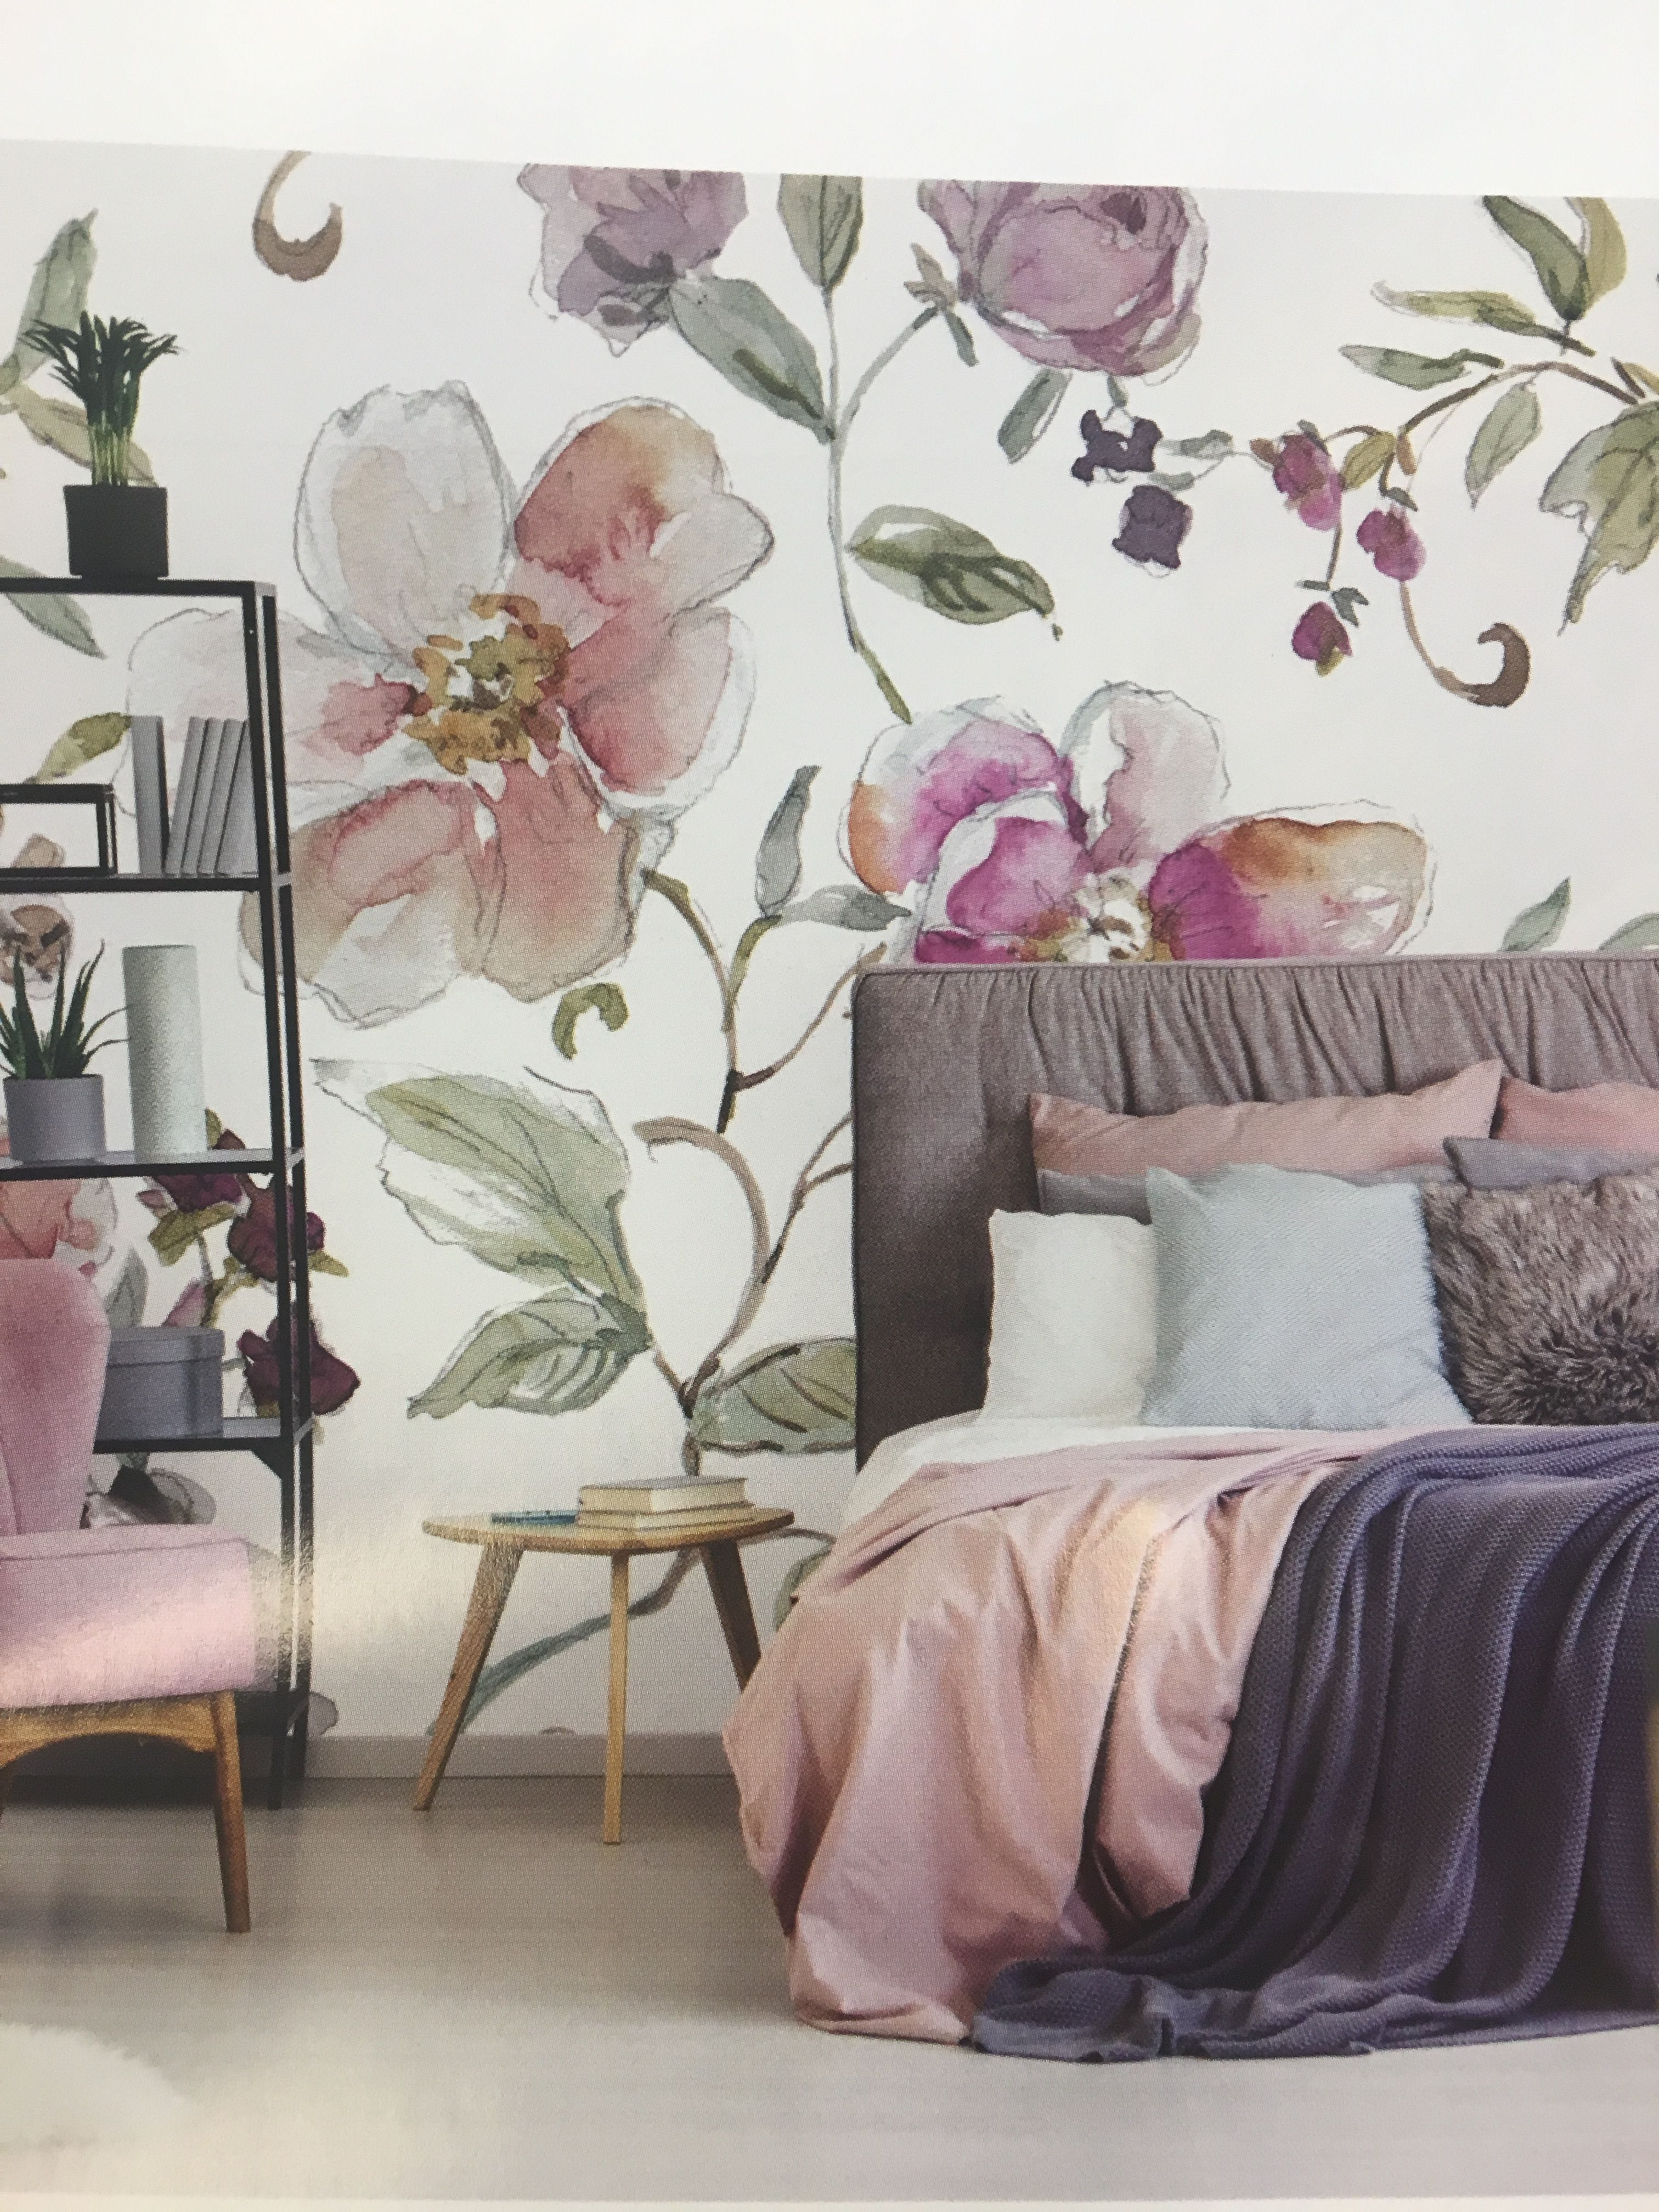 Pin By Cin Sanchez On Tats Feature Wall Bedroom Wallpaper Bedroom Wallpaper Bedroom Feature Wall